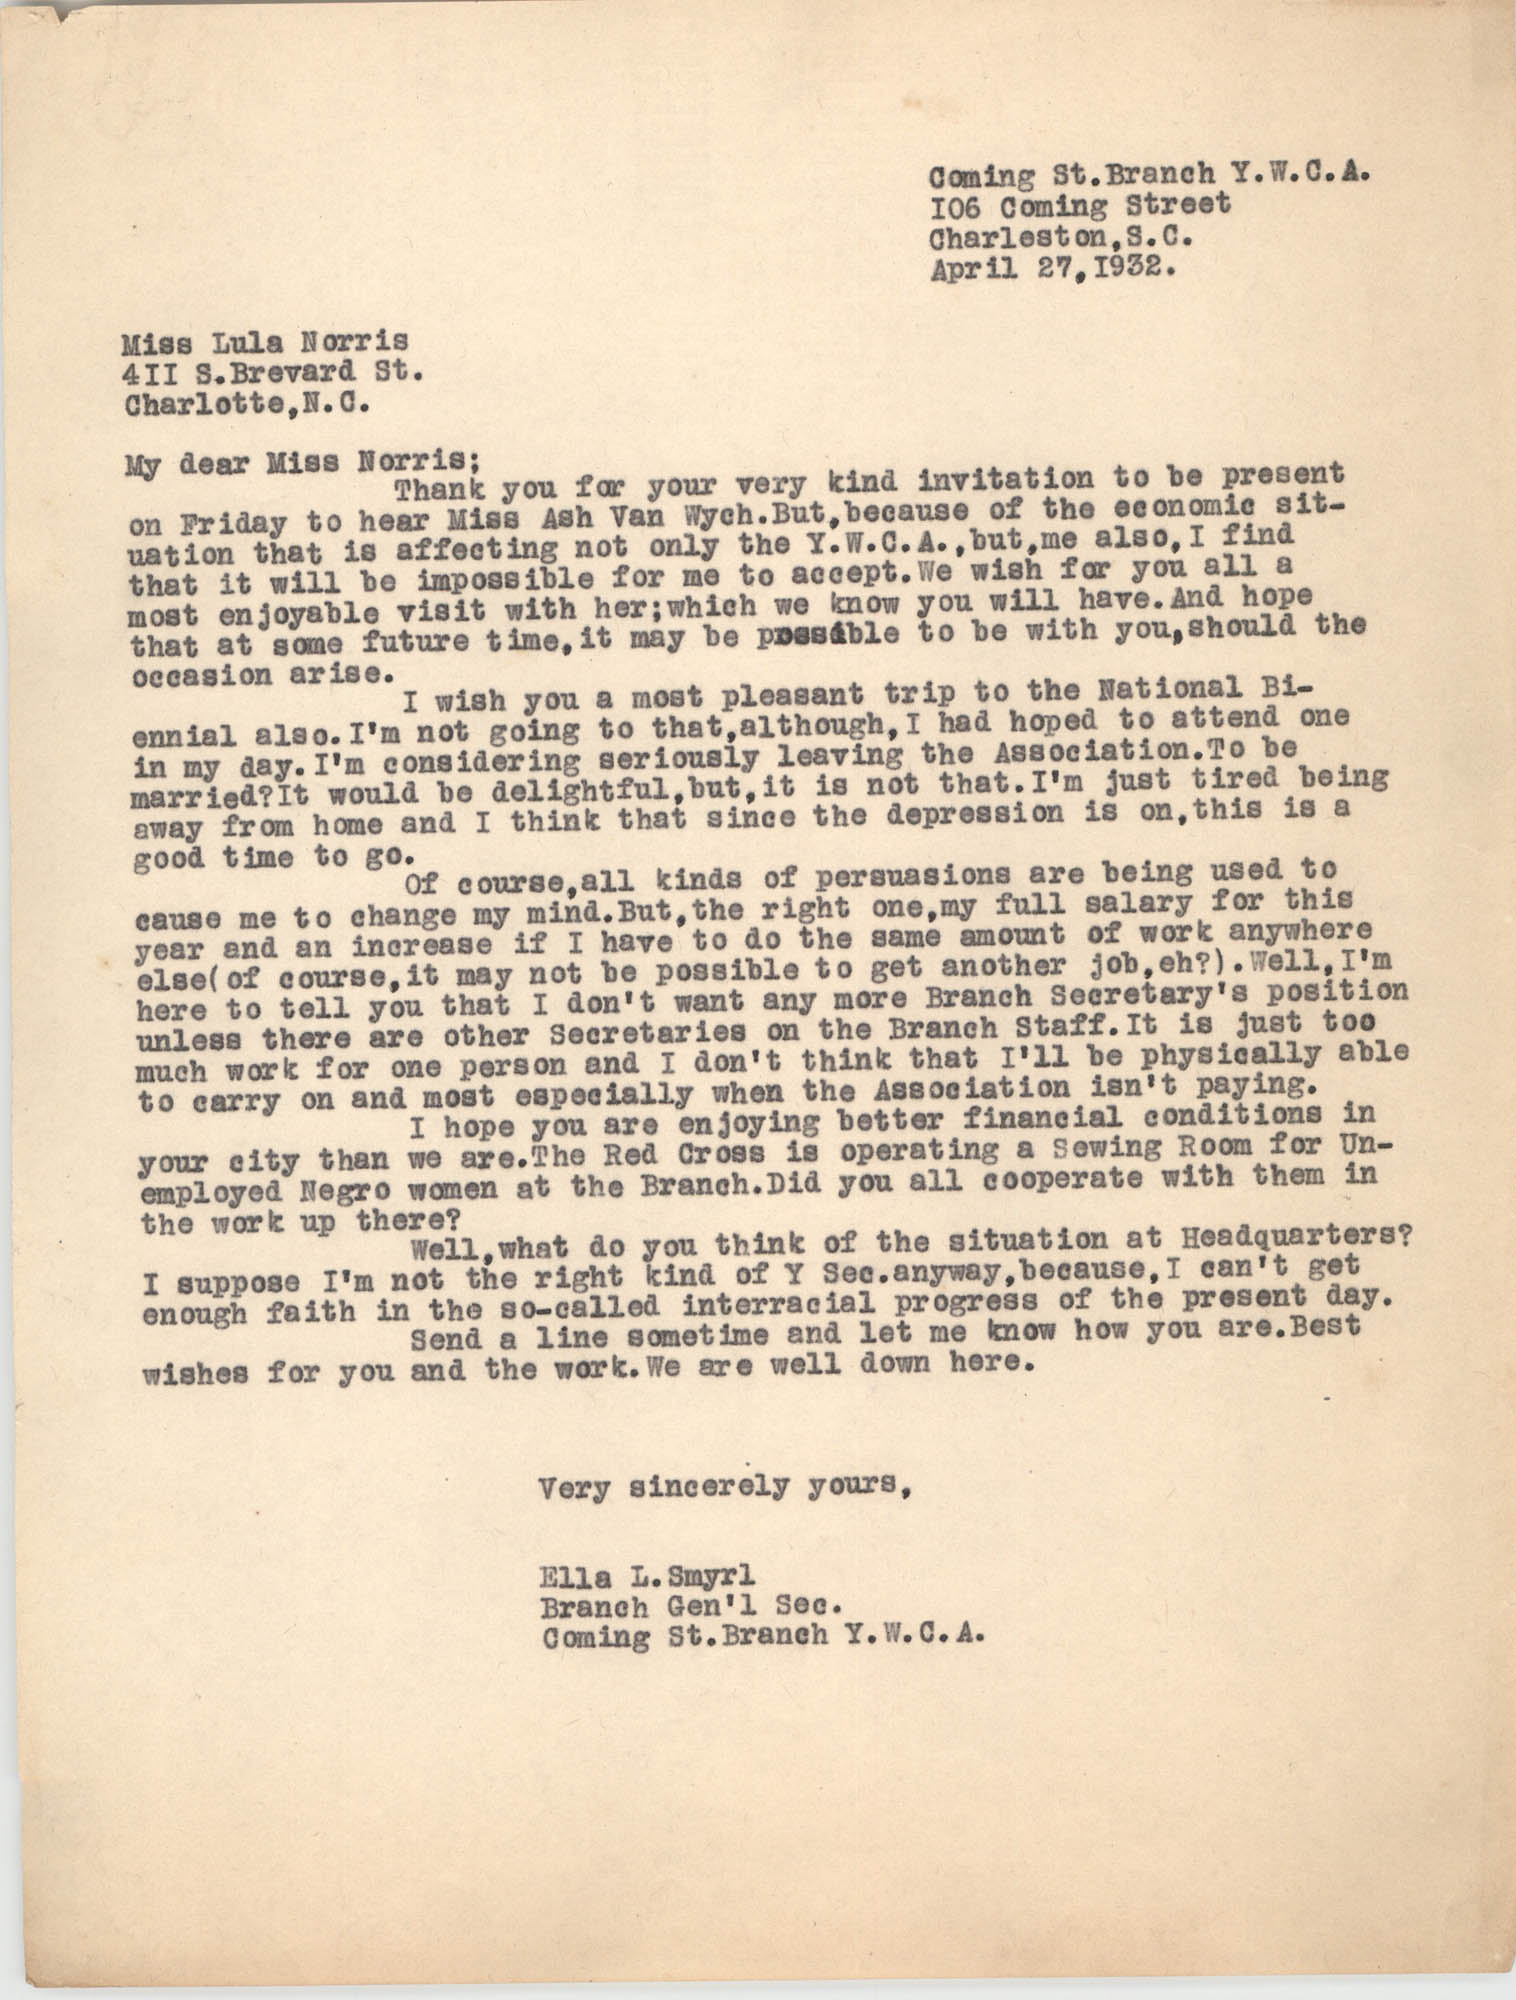 Letter from Ella L. Smyrl to Lula Norris, April 27, 1932